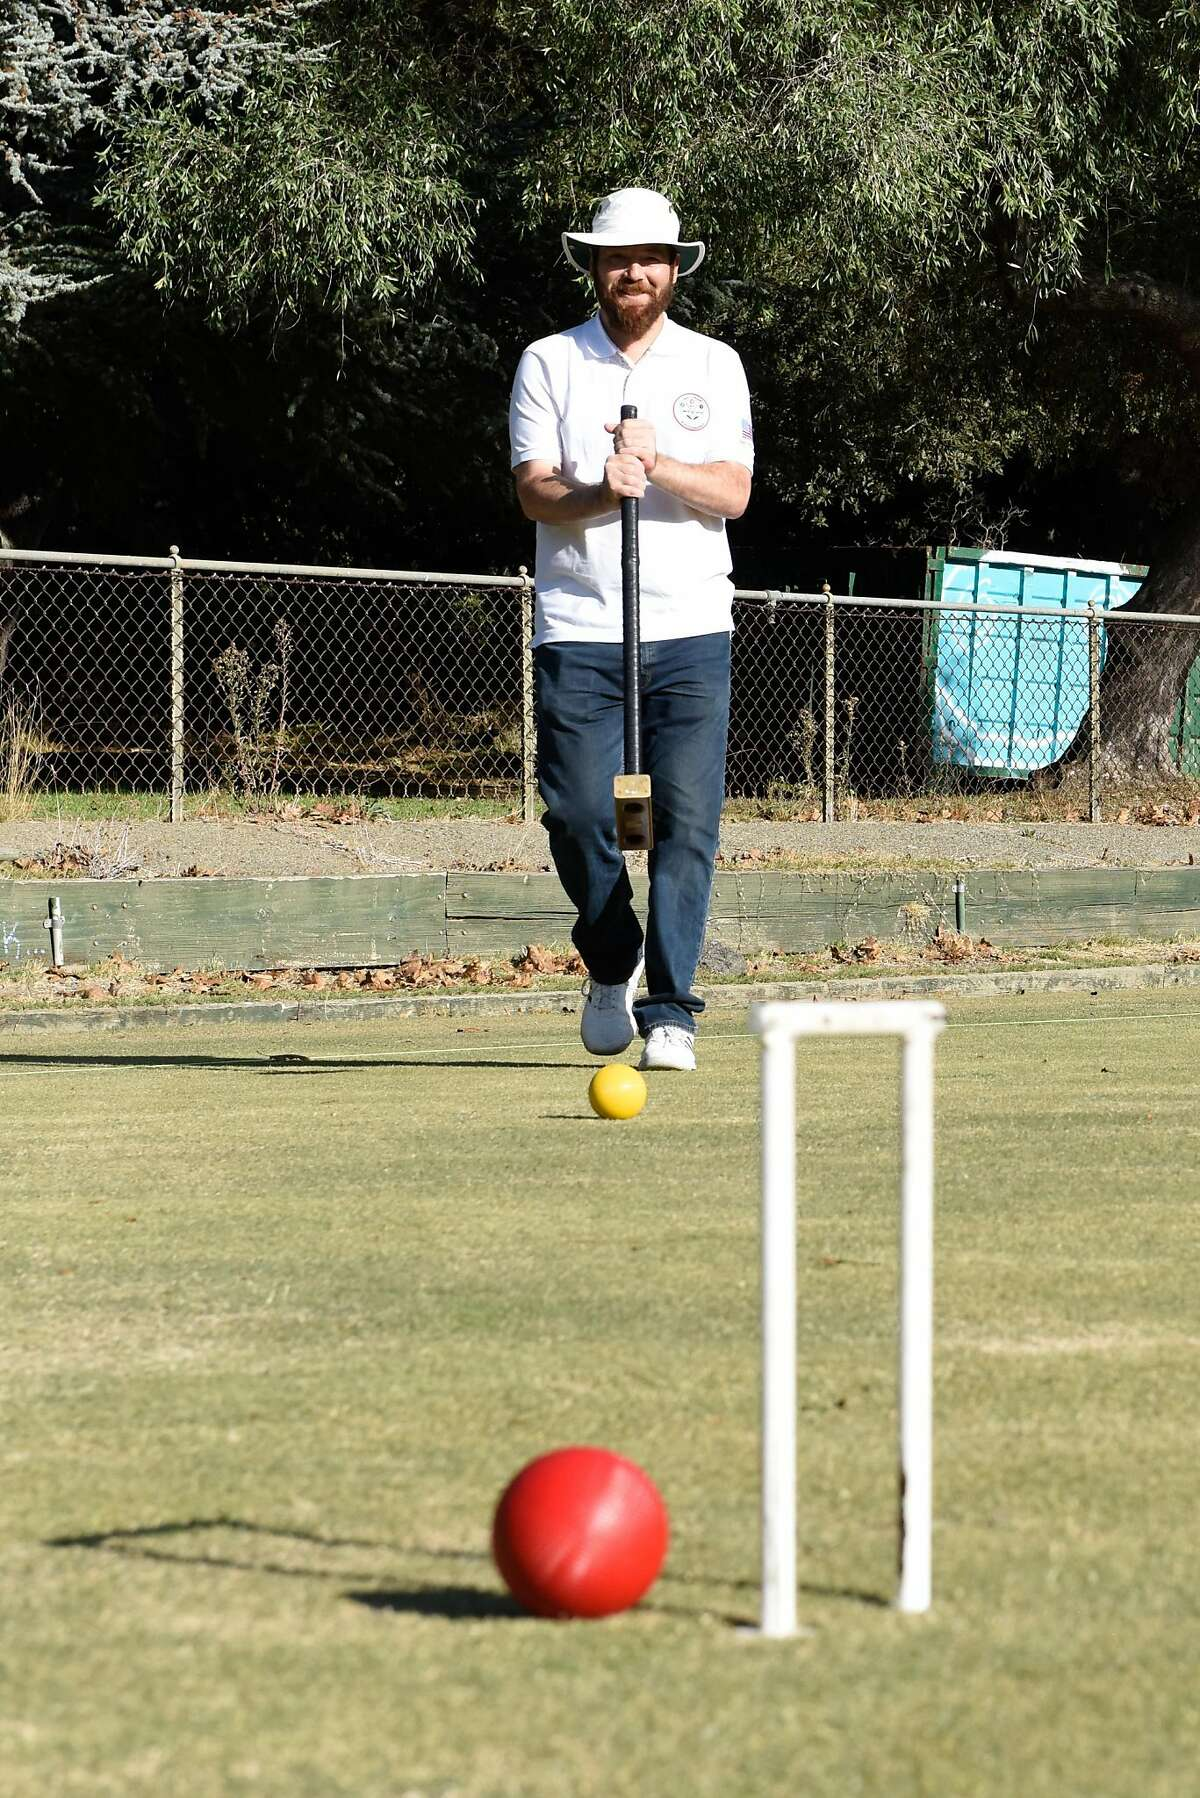 Ben Rothman, world champion of golf croquet, practices at the Oakland Croquet Club on October 17, 2019 in Oakland, Calif.